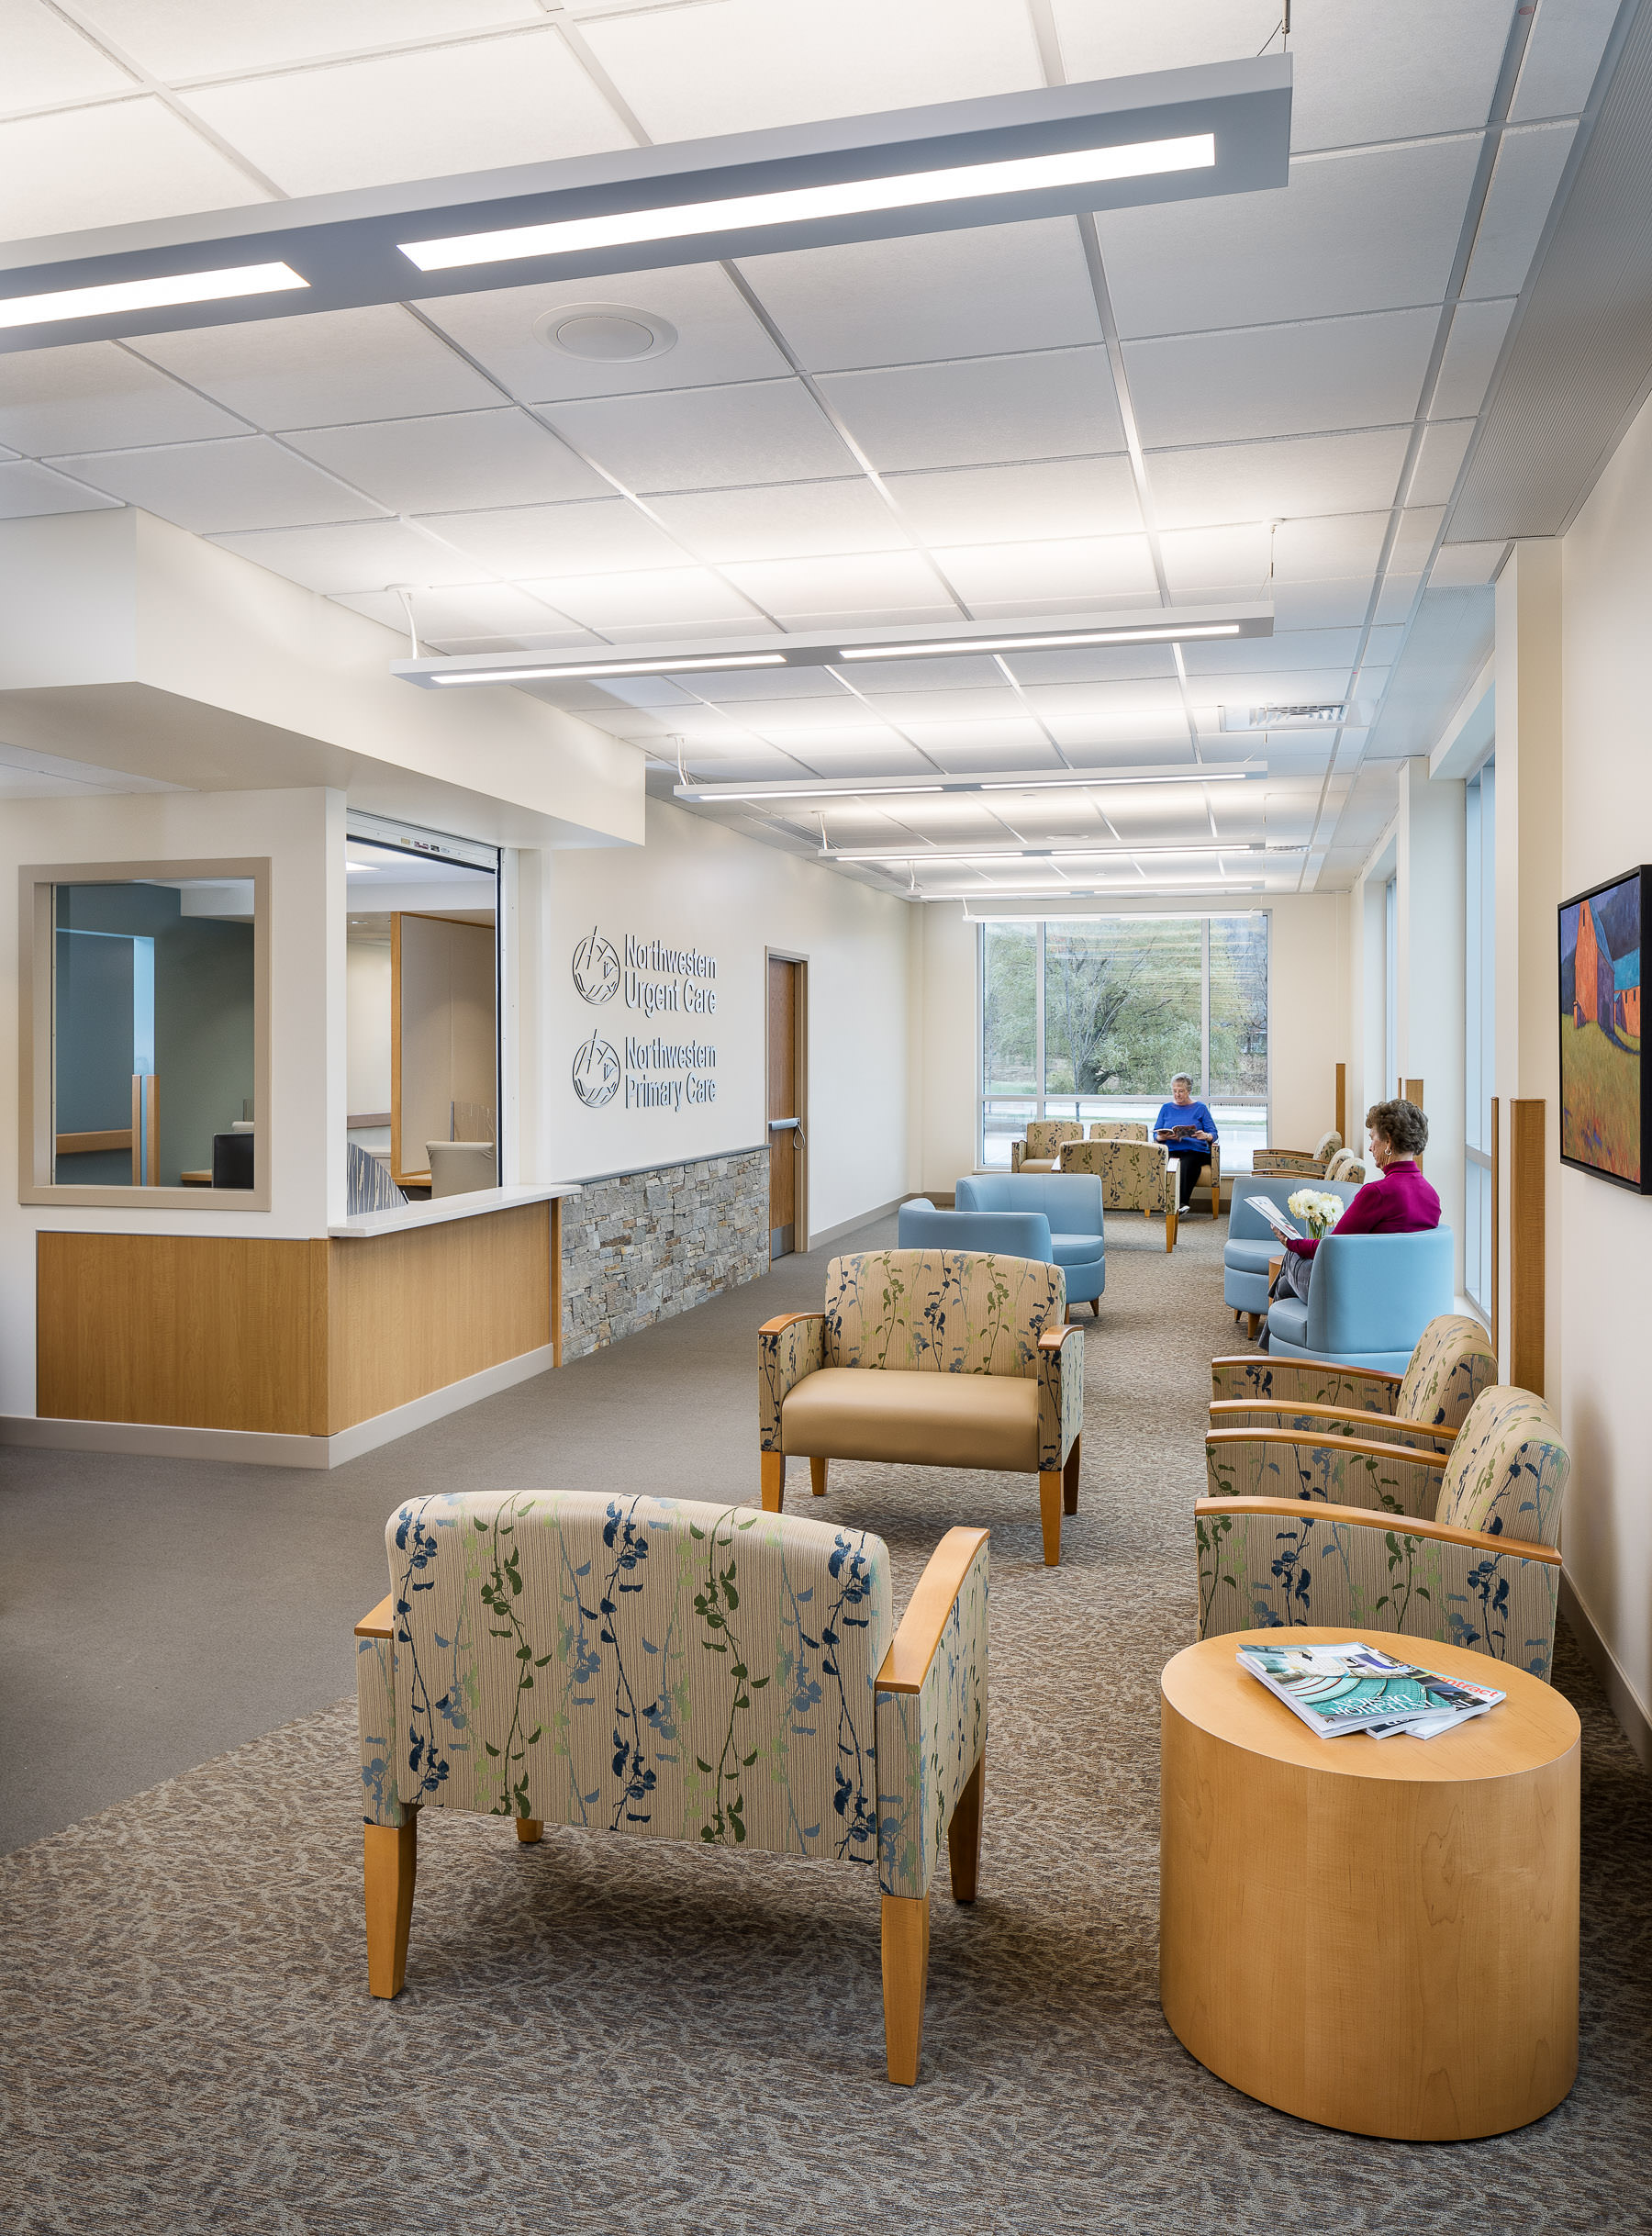 A photo of the patient waiting area in Northwestern Medical Center's Medical Office Building in St. Albans Vermont by professional photographer Stina Booth